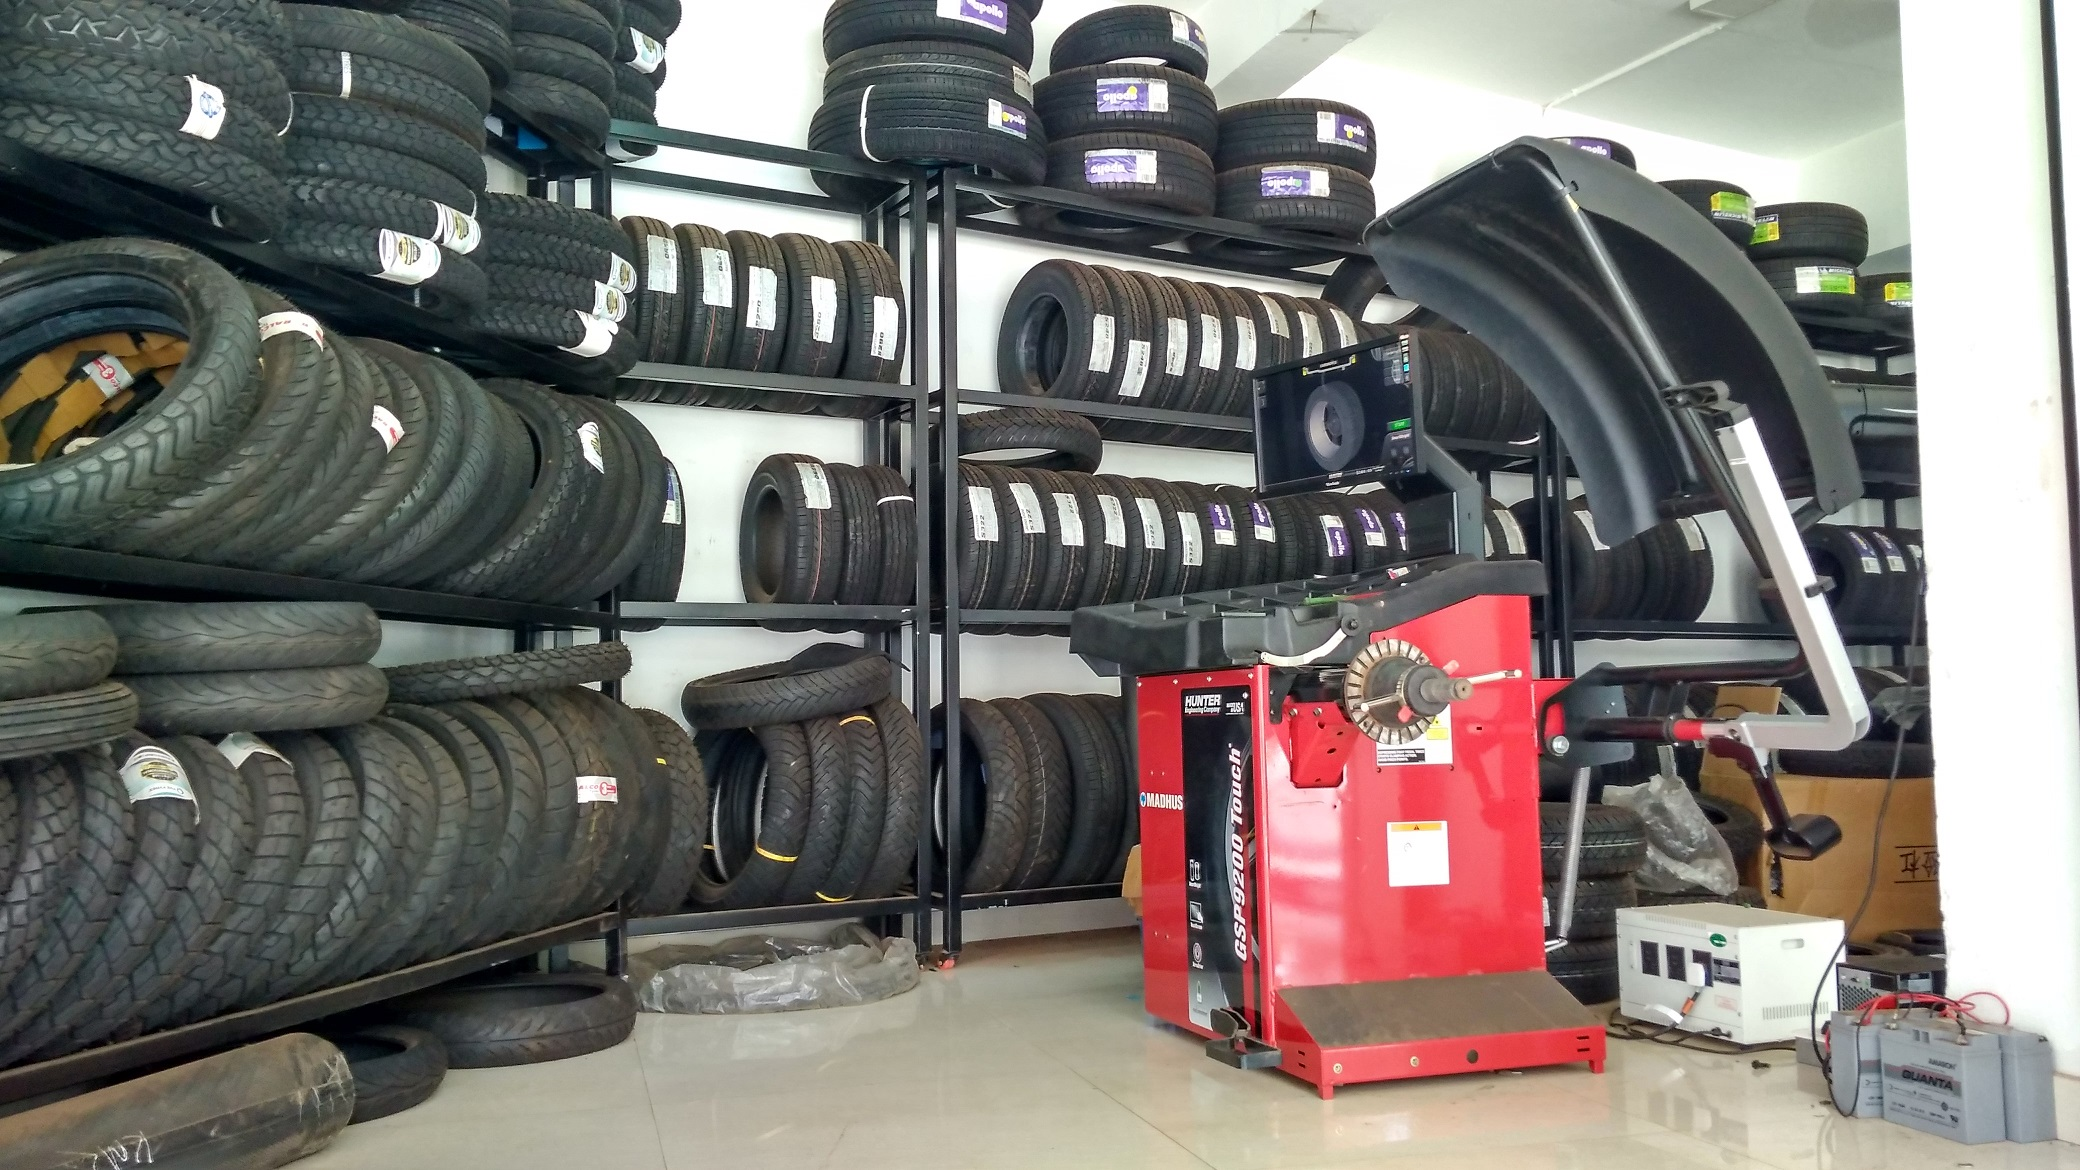 CARSROYCE Tyres & Accessories  Taliparmba, Kerala